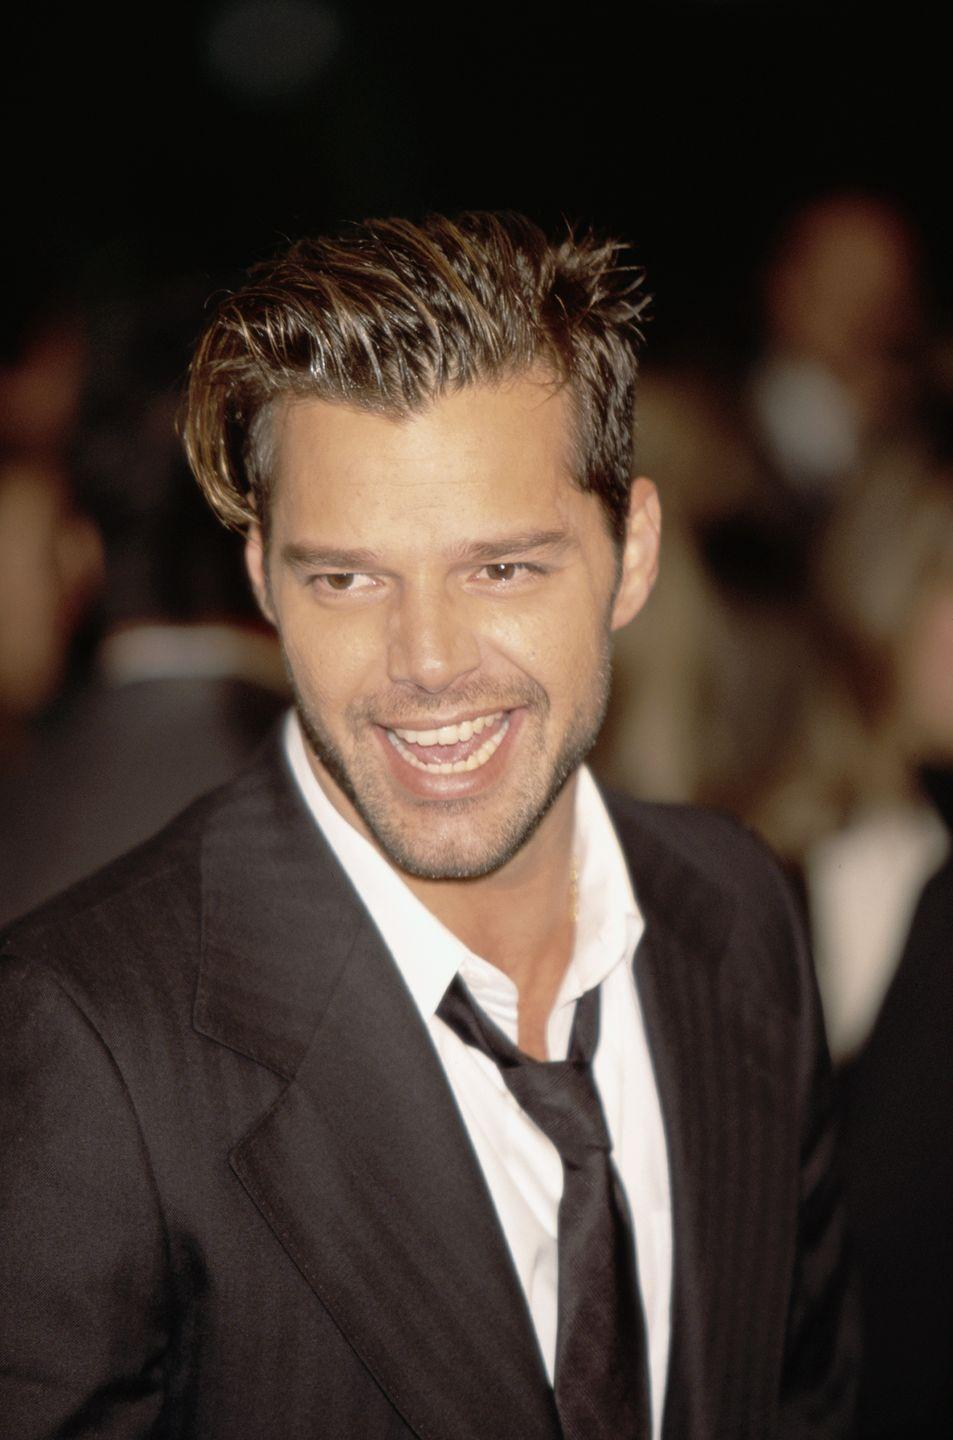 <p>Ricky was H-O-T in the '90s, mostly thanks to his worldwide hit <em>Living La Vida Loca</em>. Total babe alert </p>